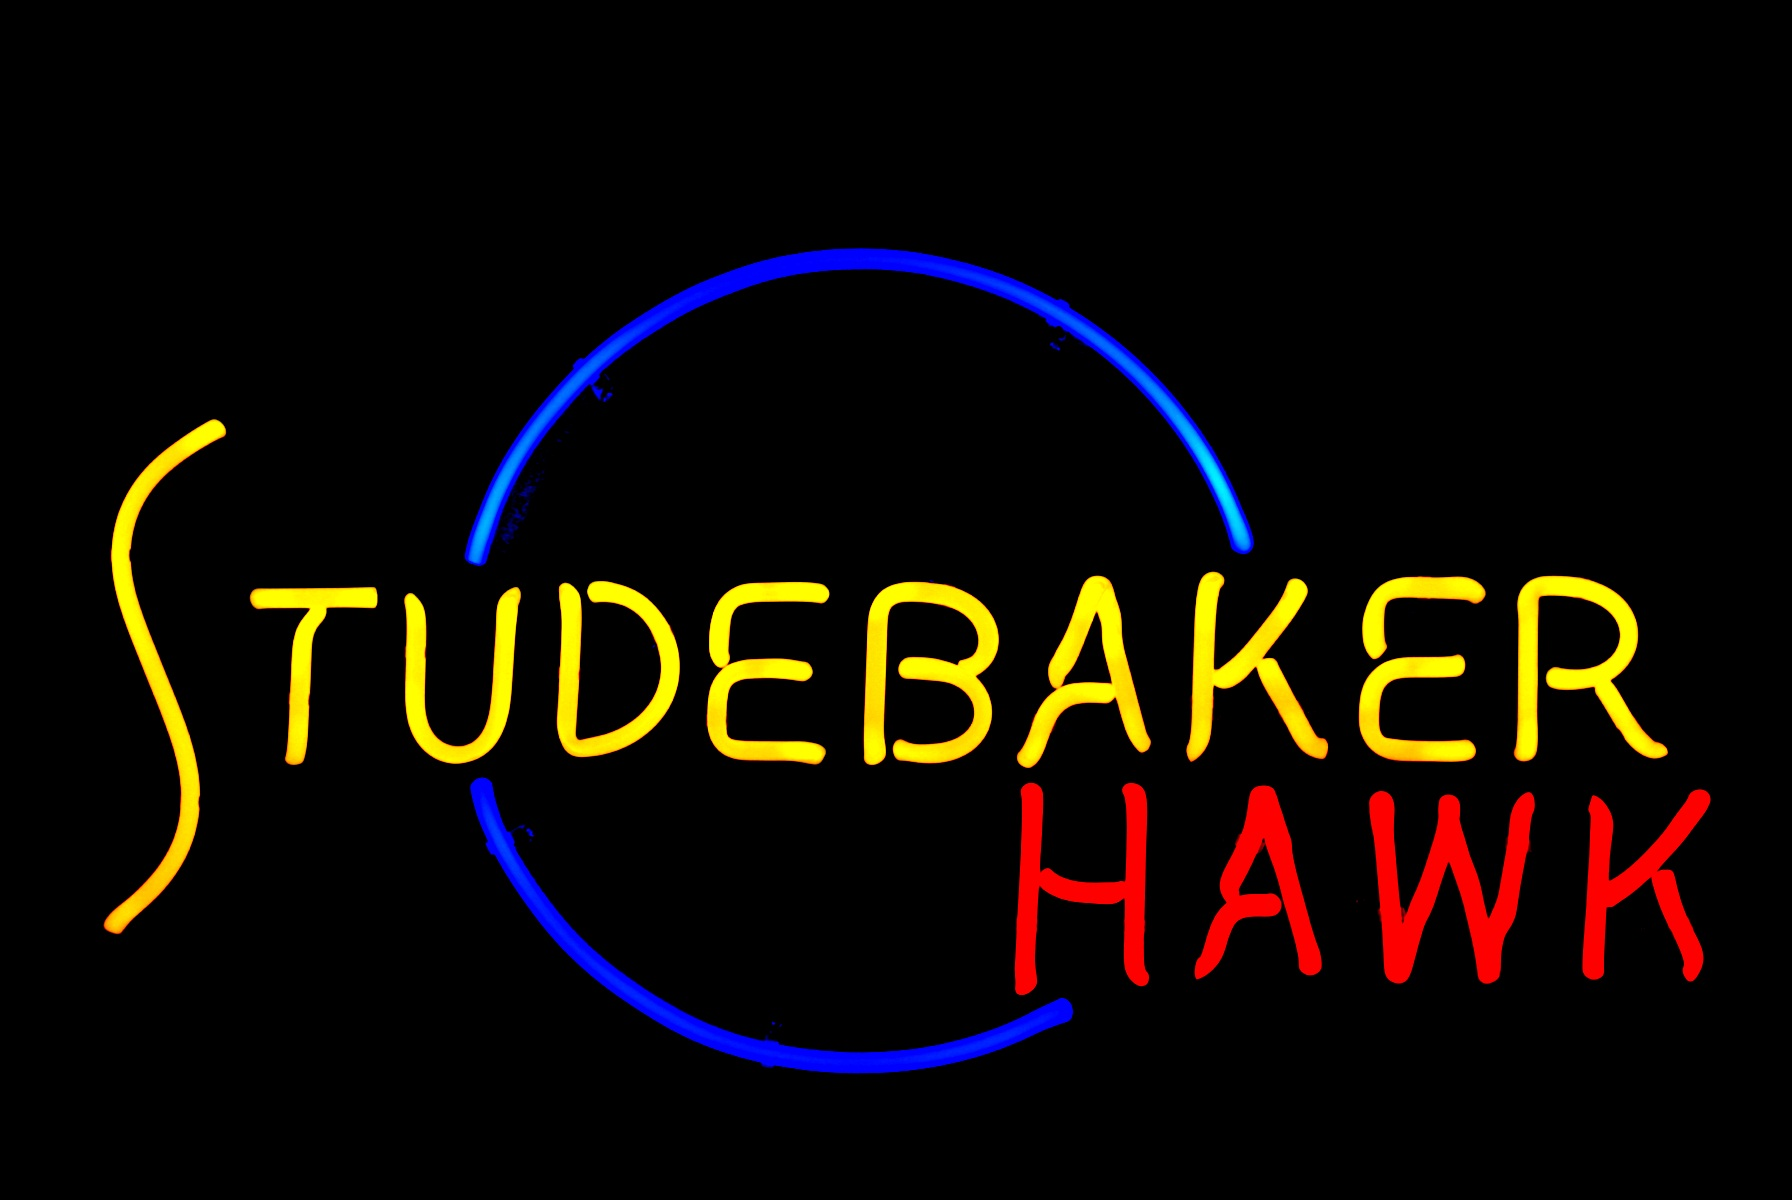 Studebaker Hawk Neon Sign by former New Studebaker Car Dealer - John Barton